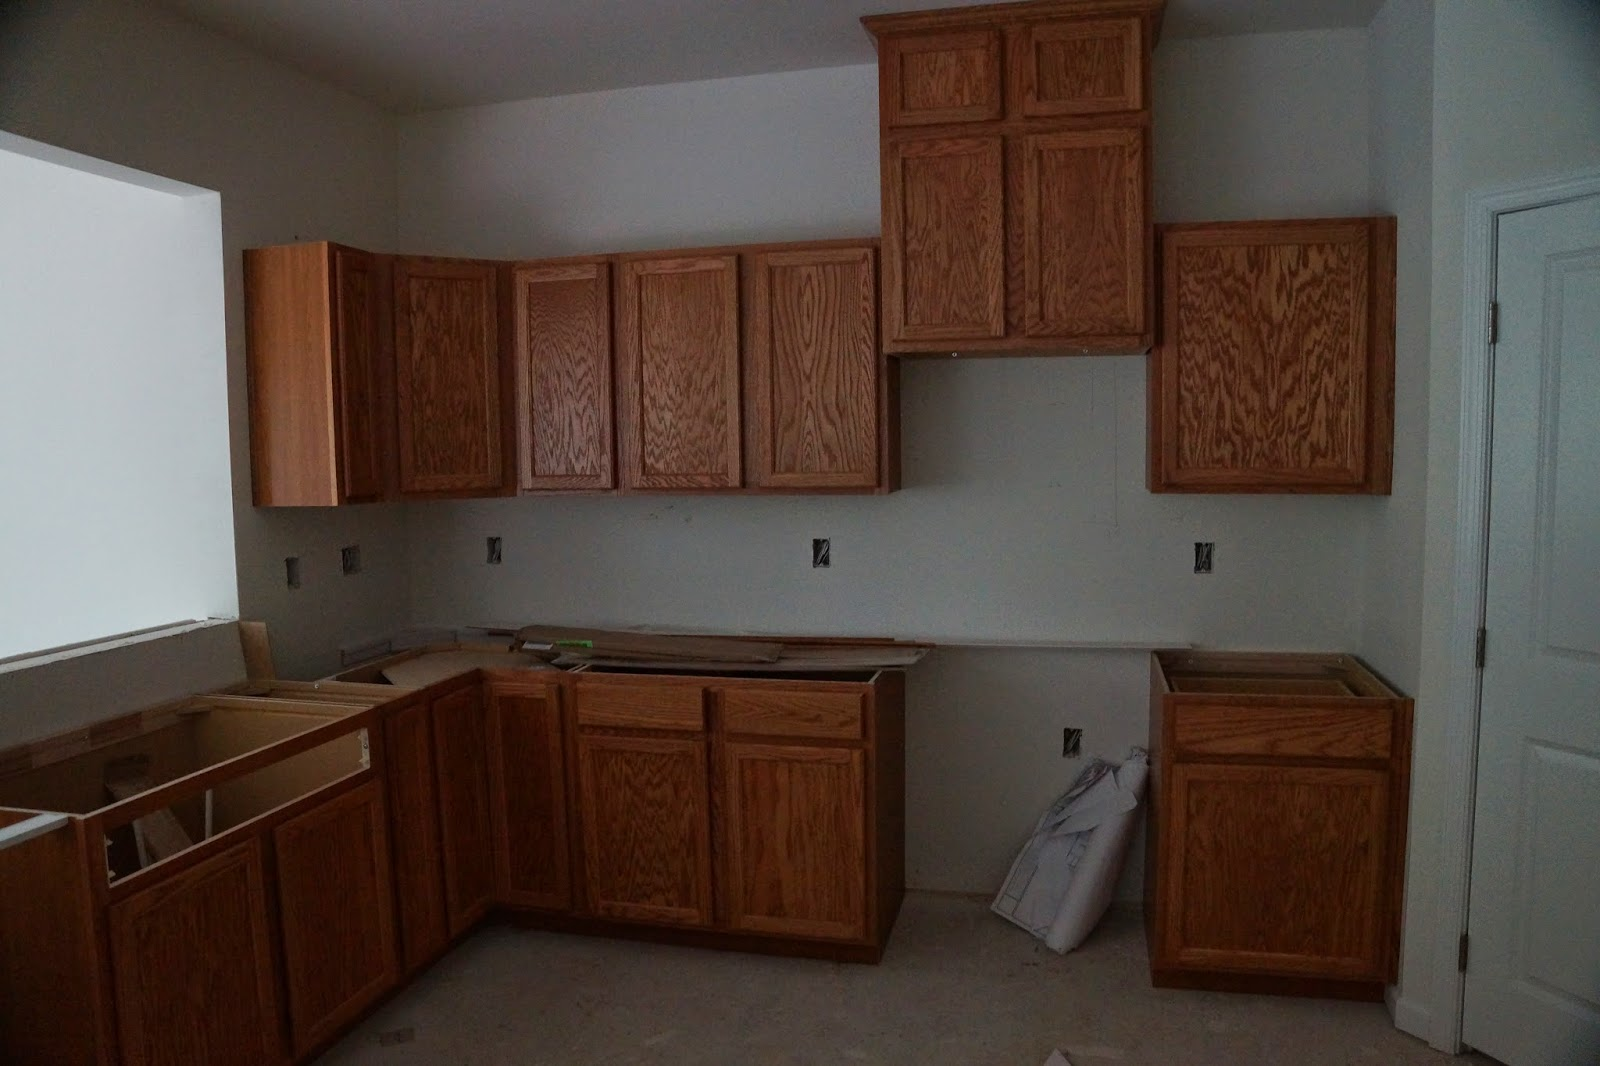 Picture of the kitchen cabinets before the counter is installed